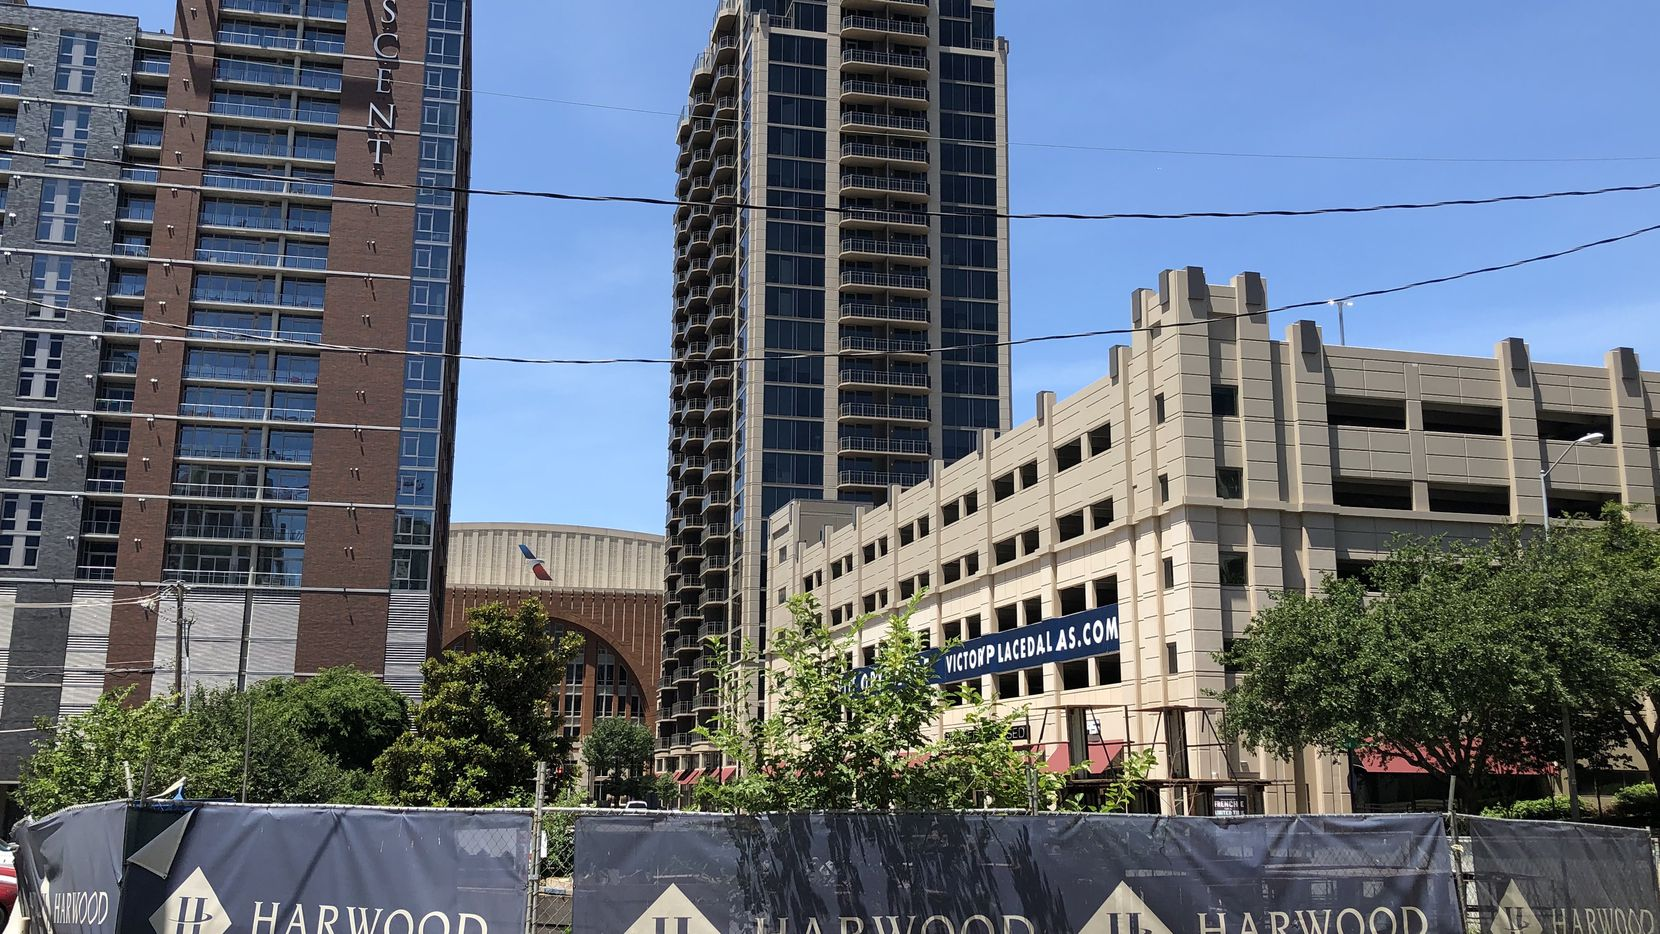 Developer Harwood International is planning a 40-story skyscraper for the site next door to Victory Park.